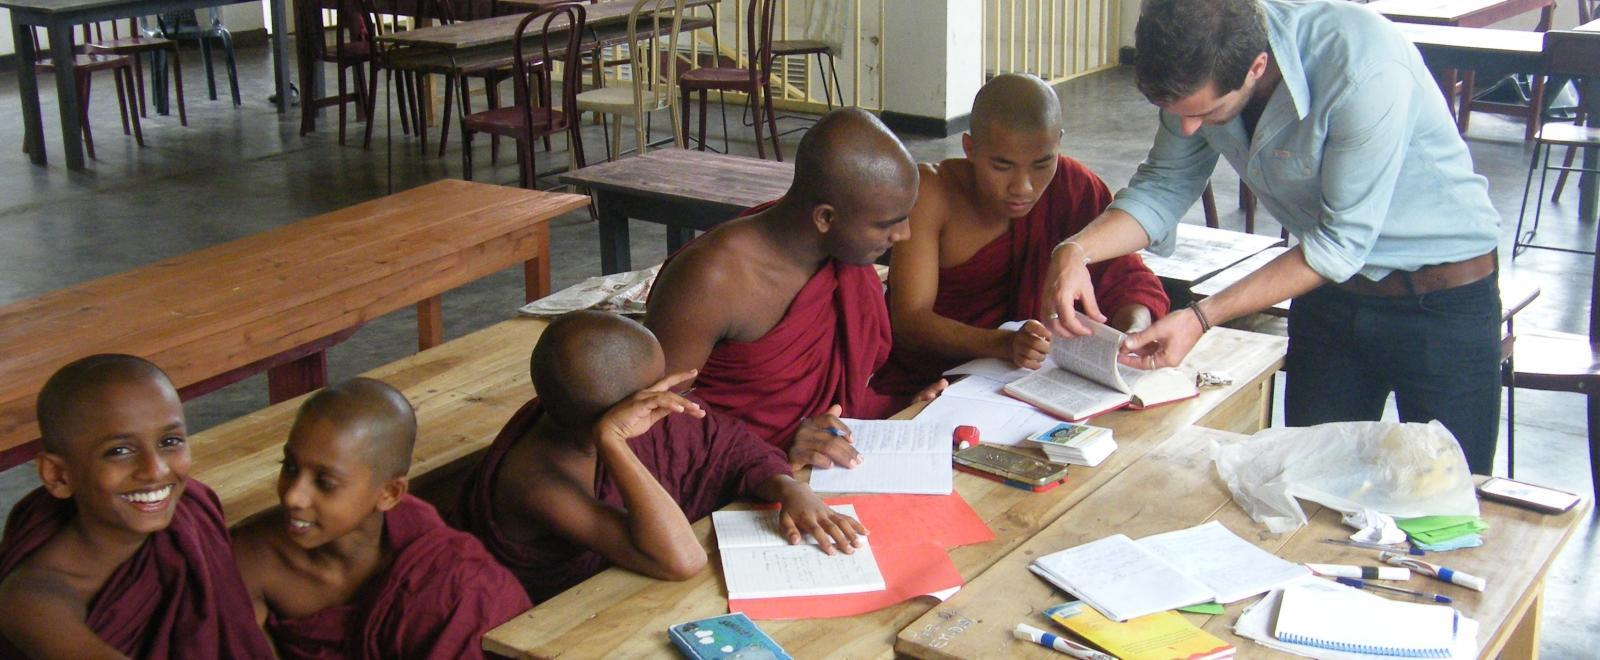 A volunteer helps his students with their classwork during his teaching work experience in Sri Lanka